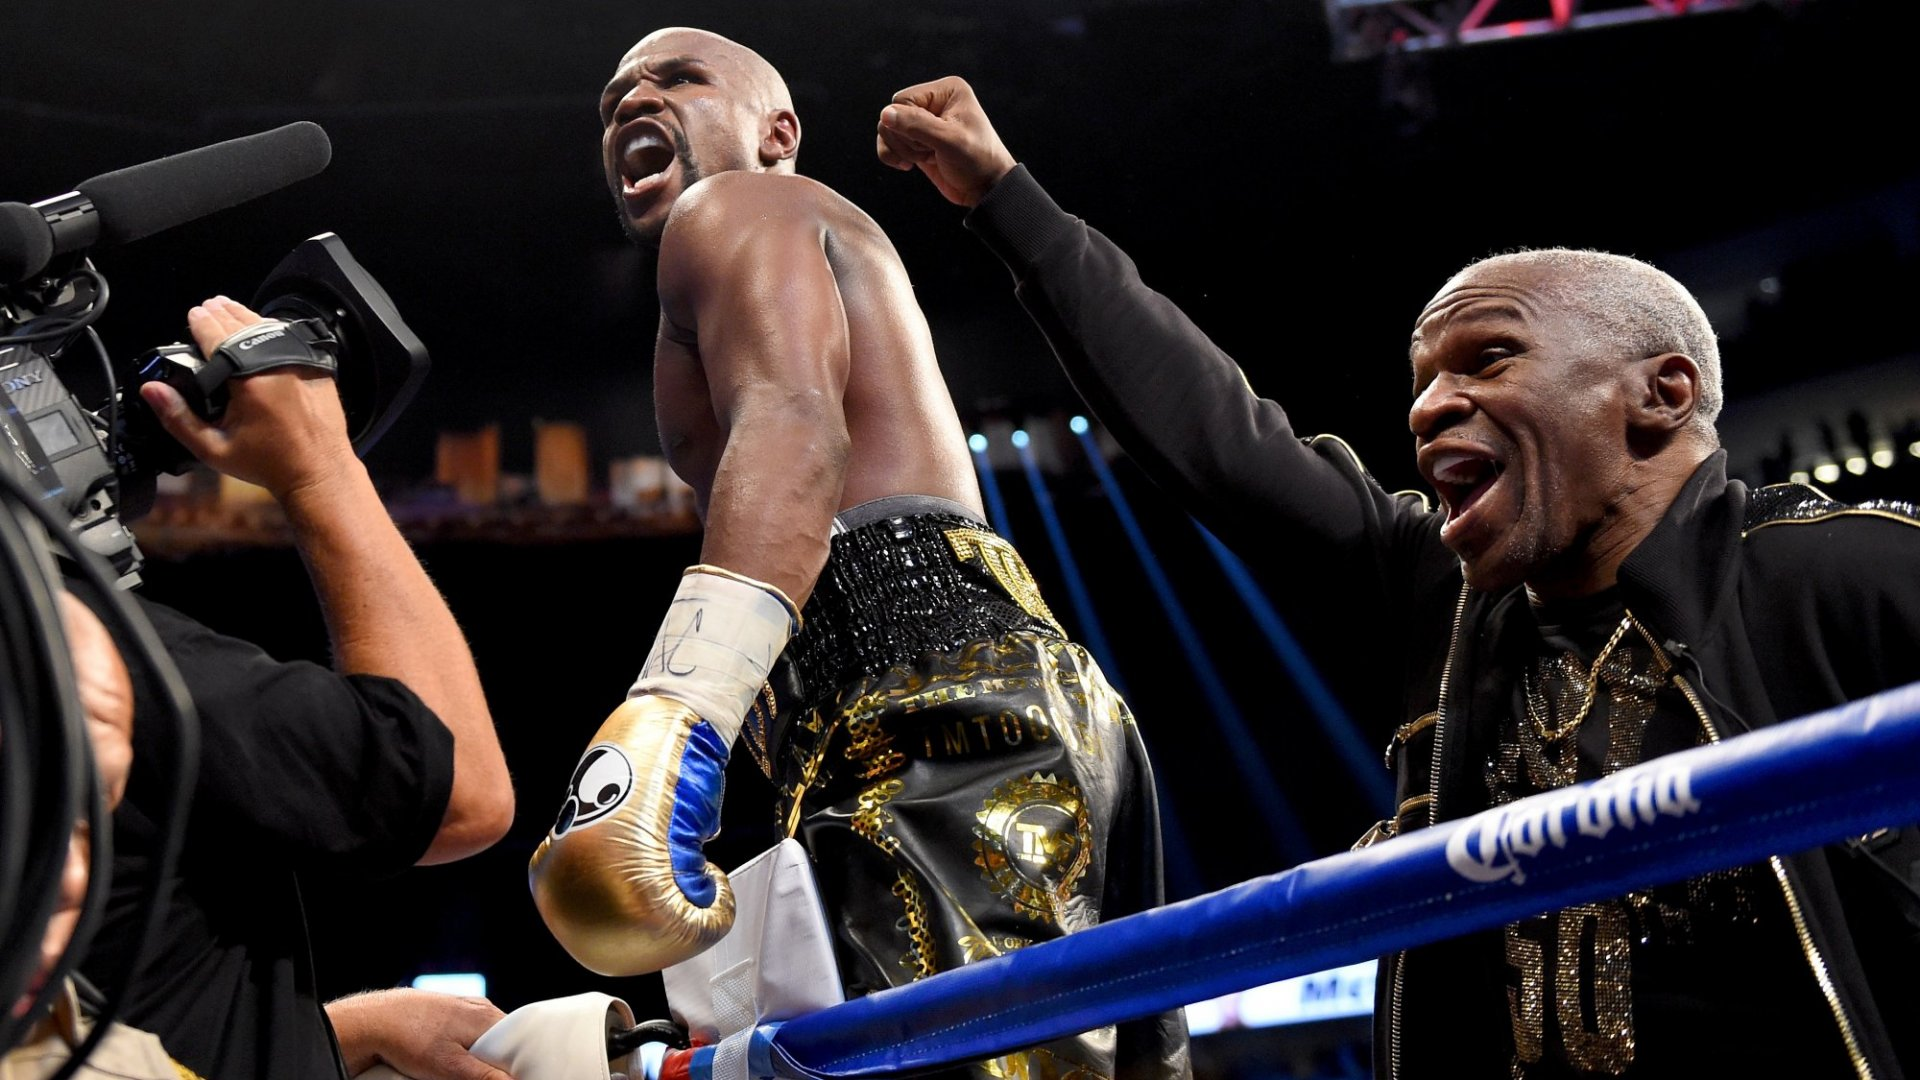 Floyd Mayweather Made $300 Million in 28 Minutes. Here Are 2 Lessons You Can Learn From Him